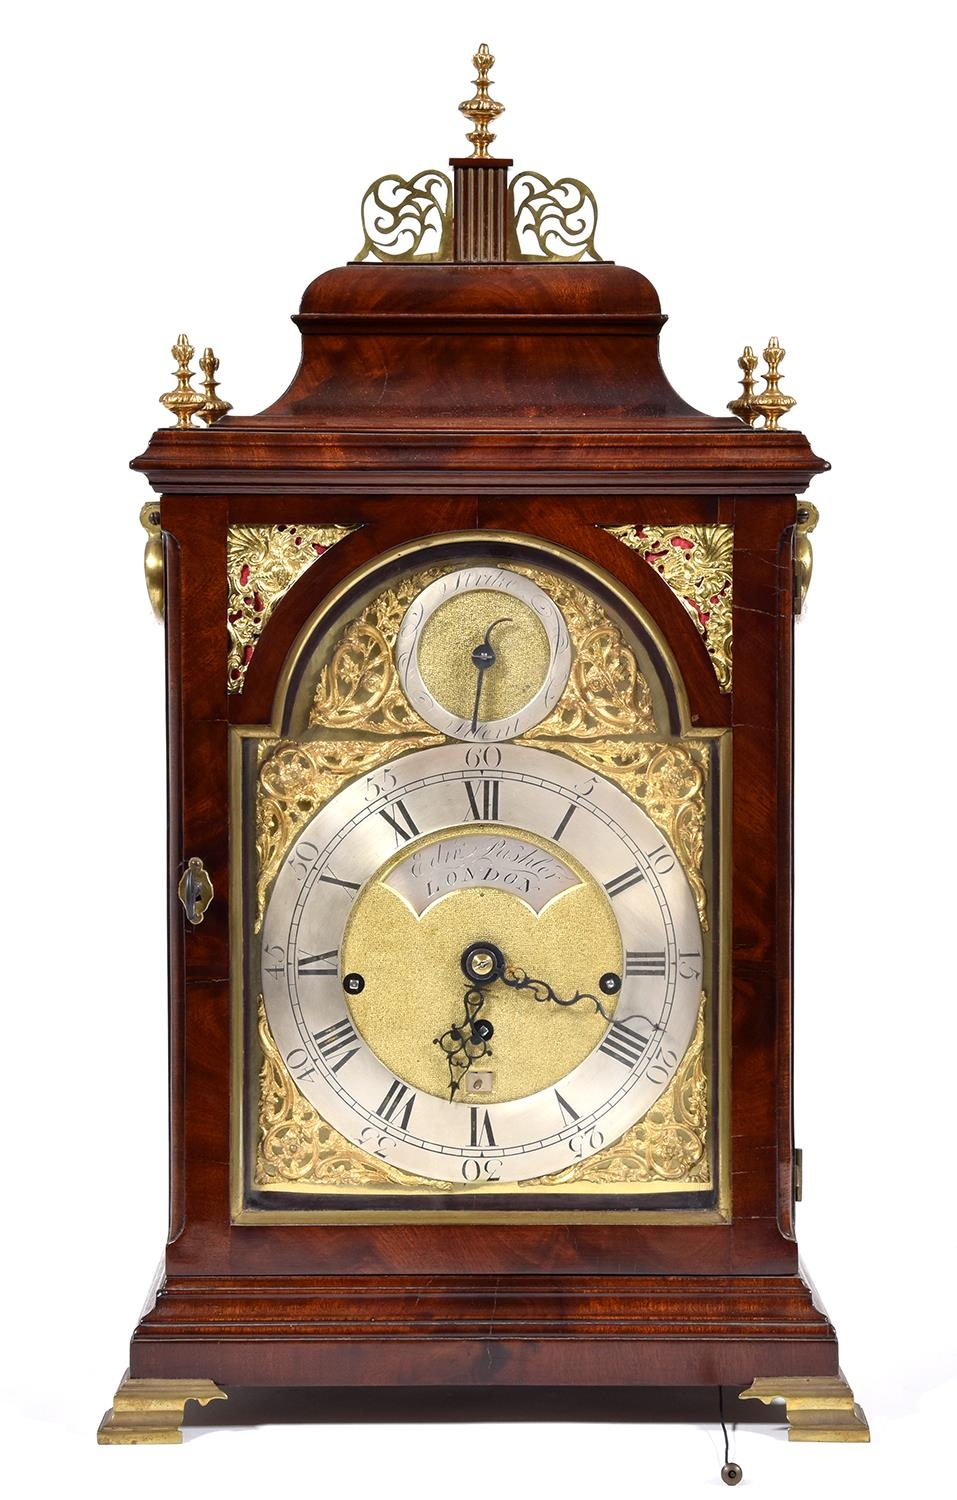 An English mahogany bracket clock, Edward Pashler, London, c1775,the breakarched brass dial with